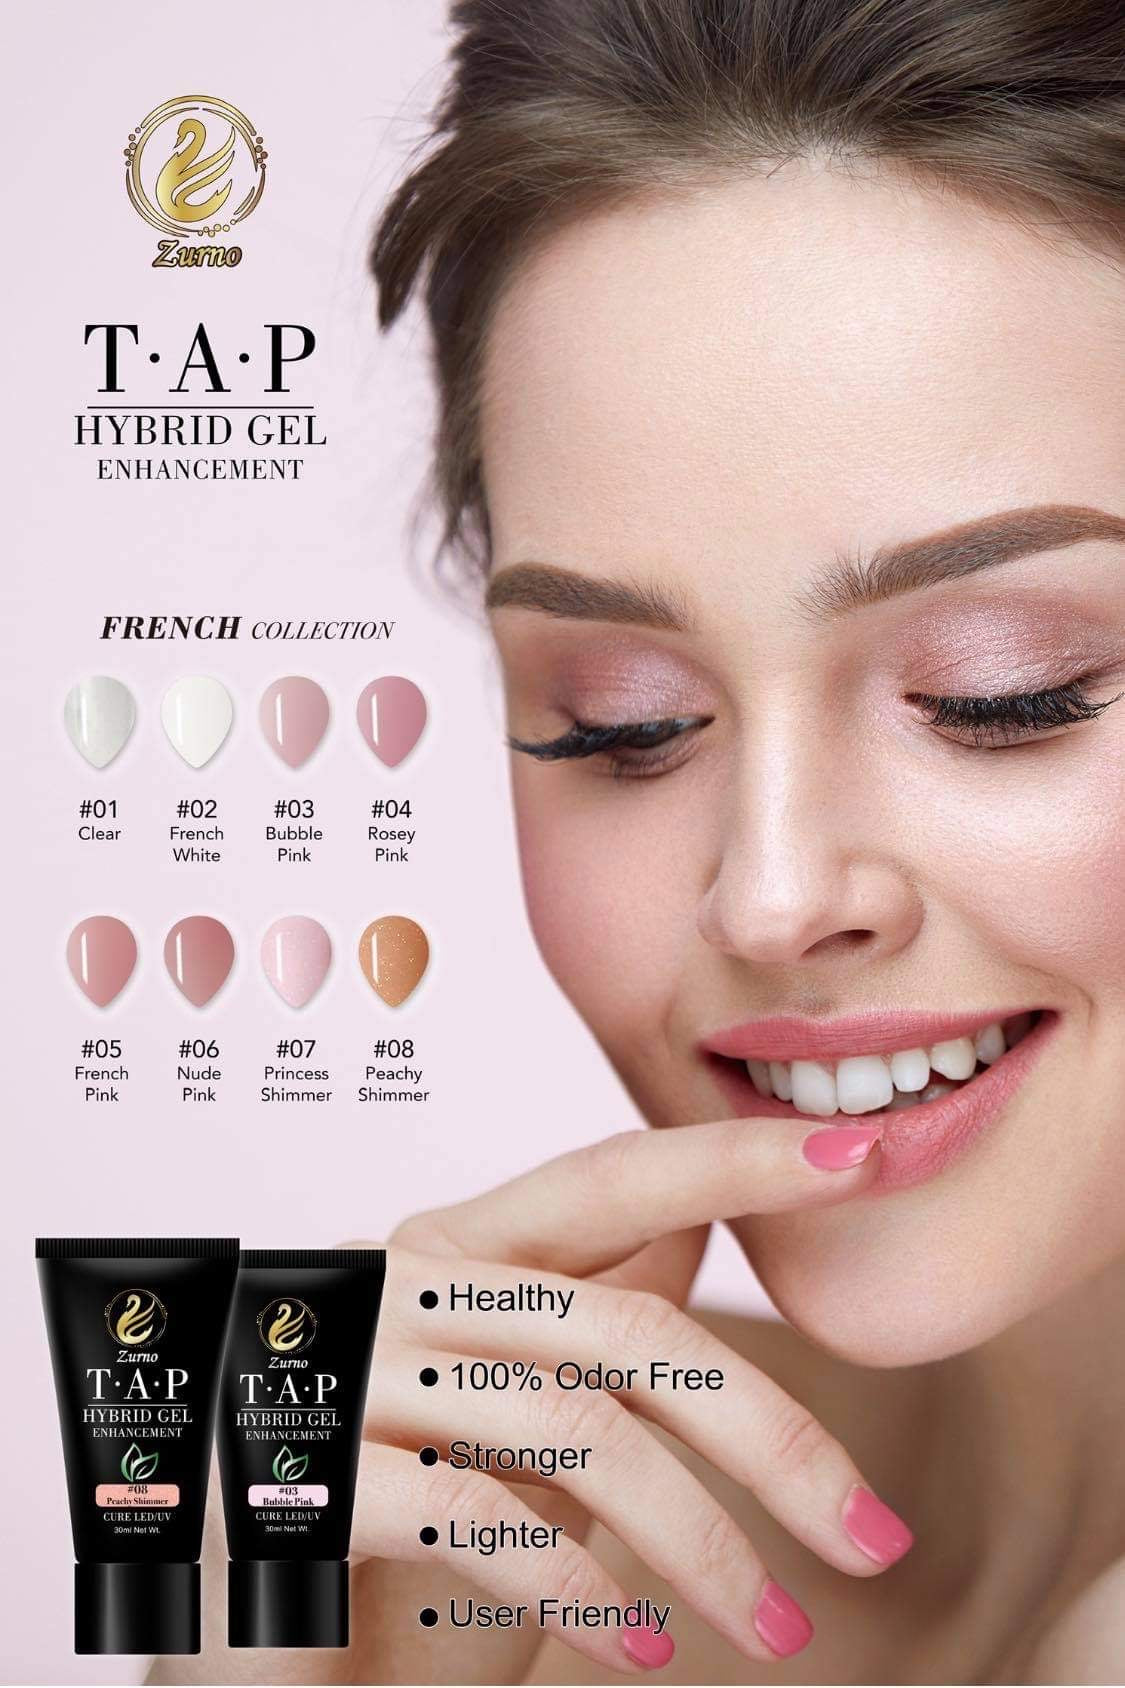 T.A.P- #06 Nude Pink- 30ml / HYBRID GEL FRENCH Collection